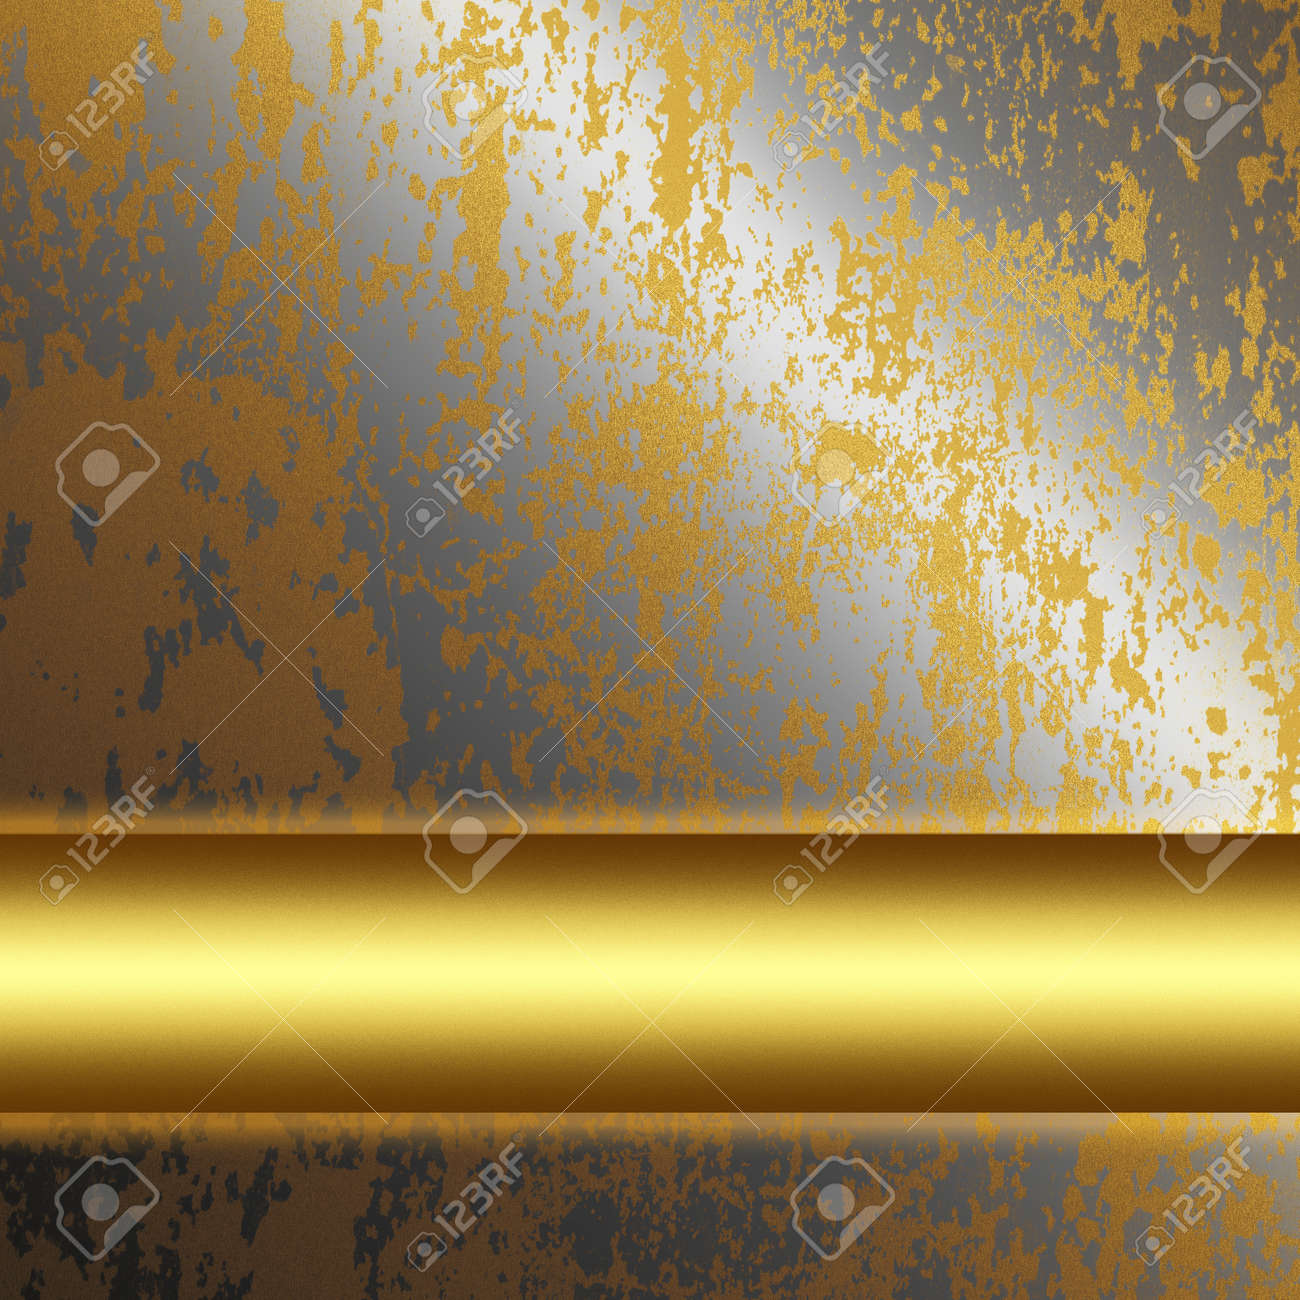 old silver metal surface with gold bar as background to insert text or design Stock Photo - 12407270